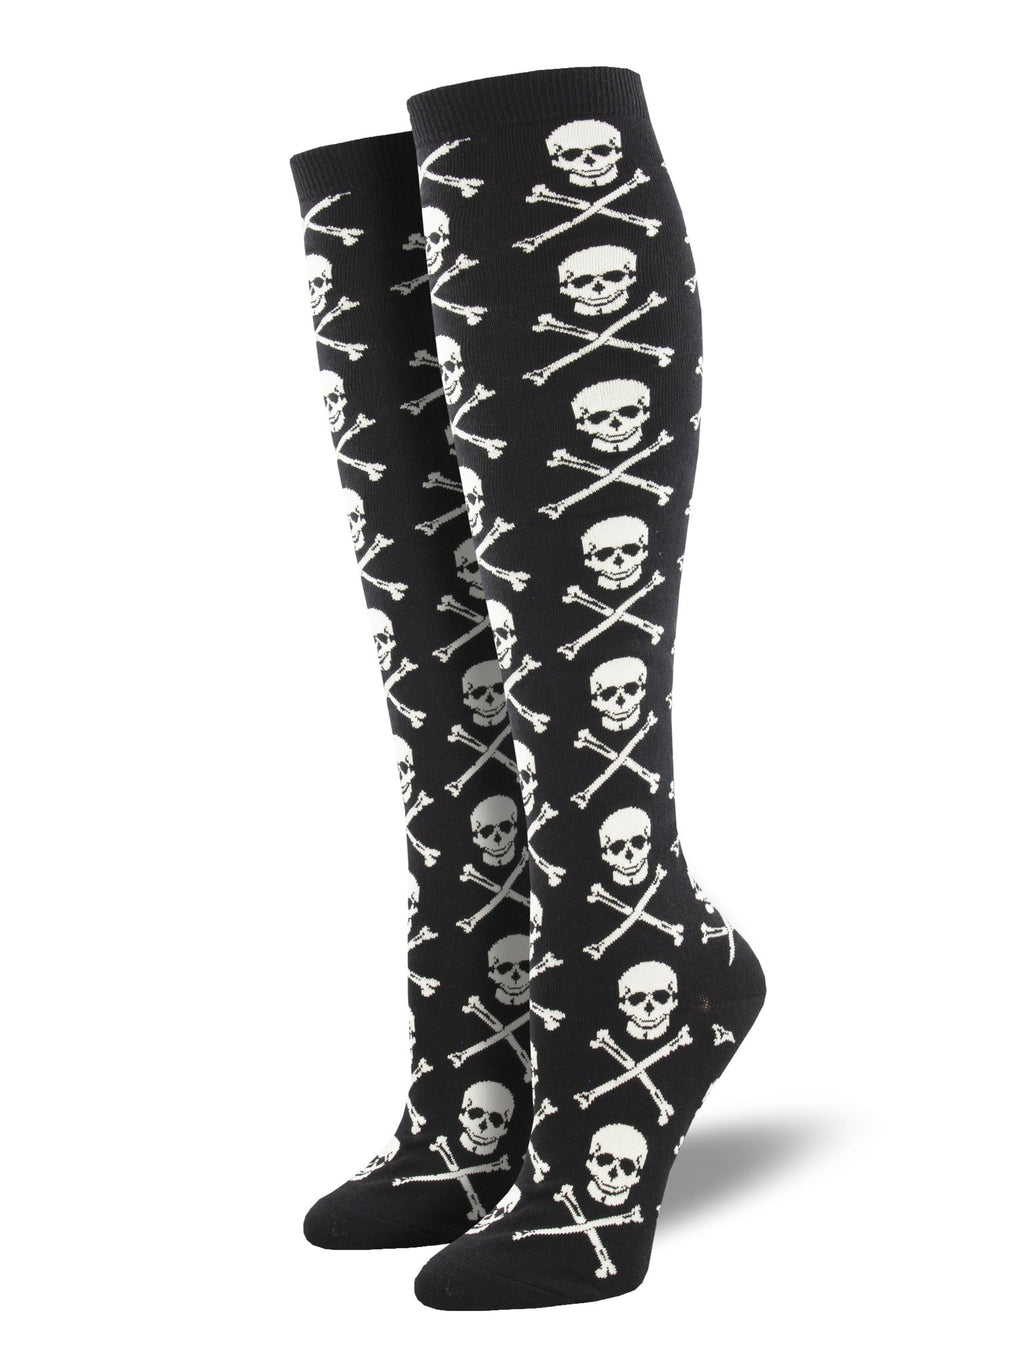 Cross Bones Knee High Women's Socks